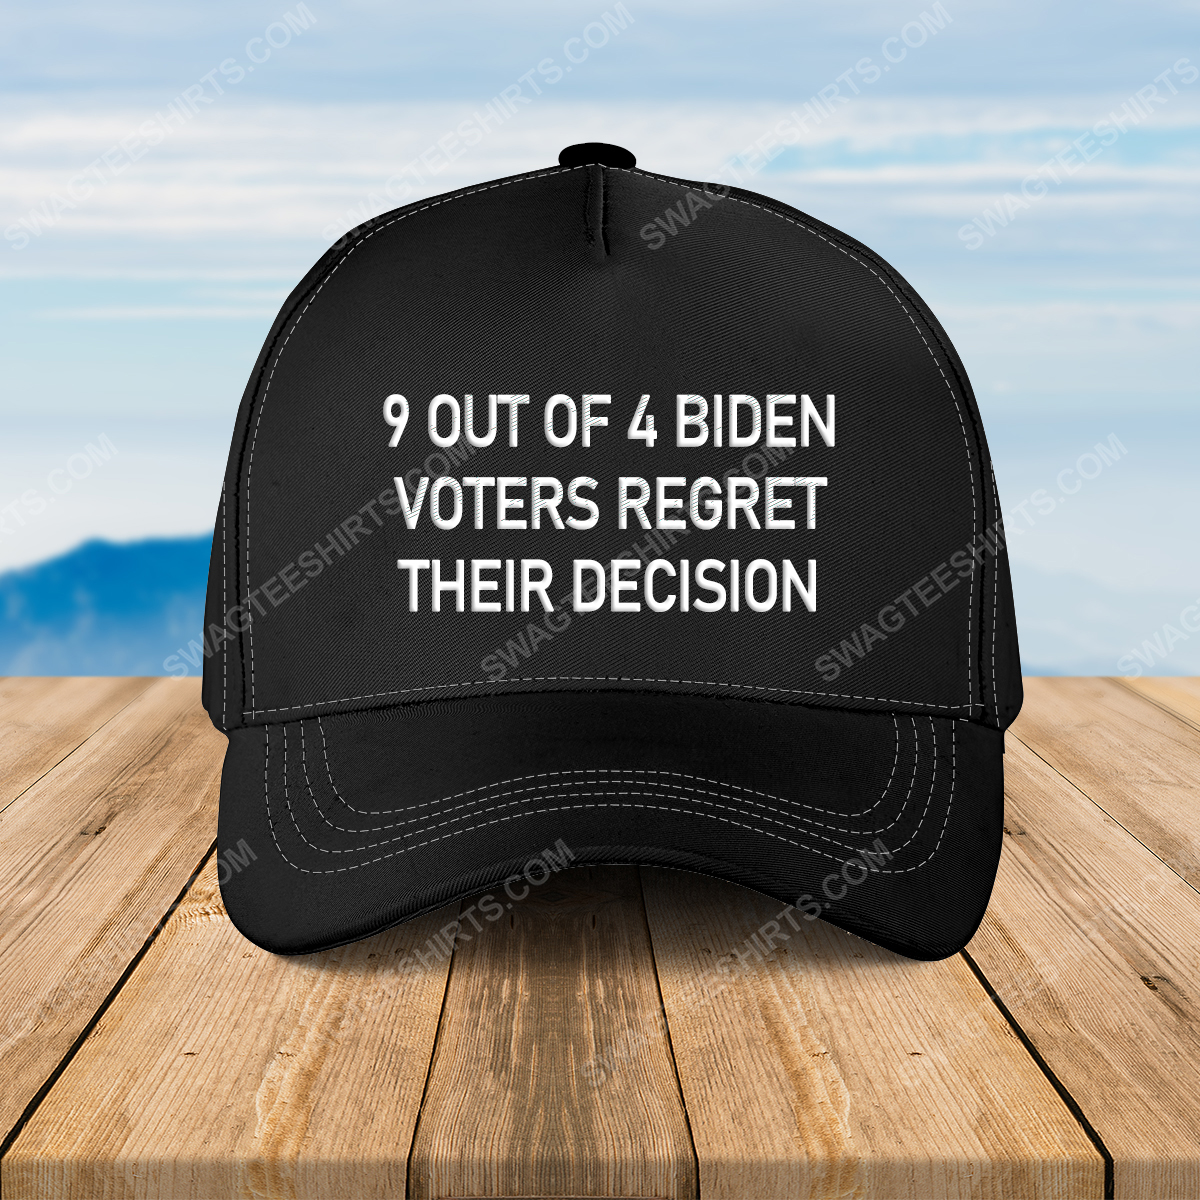 9 out of 4 biden voters regret their decision full print classic hat 1